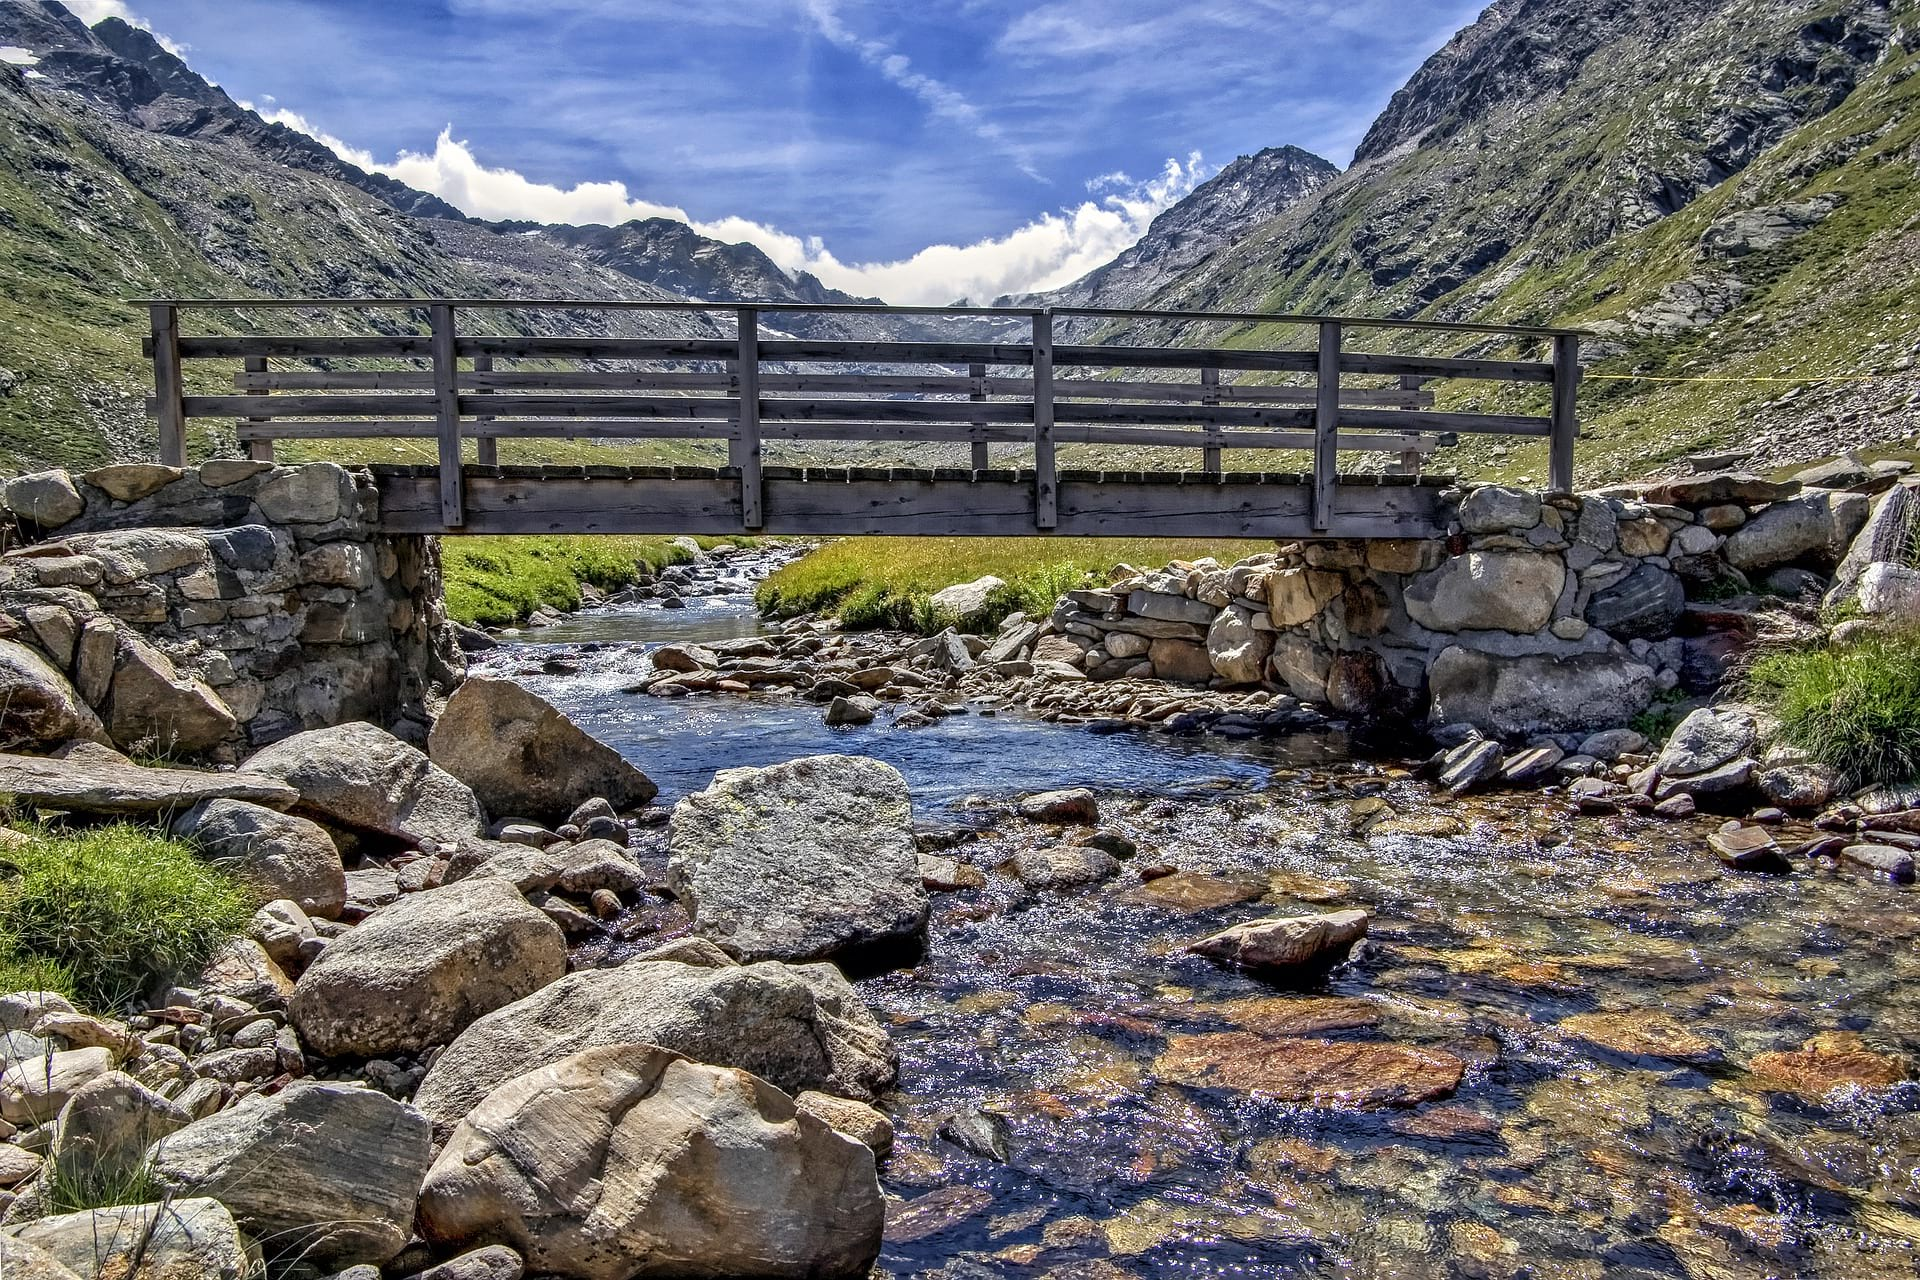 val d'aostra mountains and bridge image